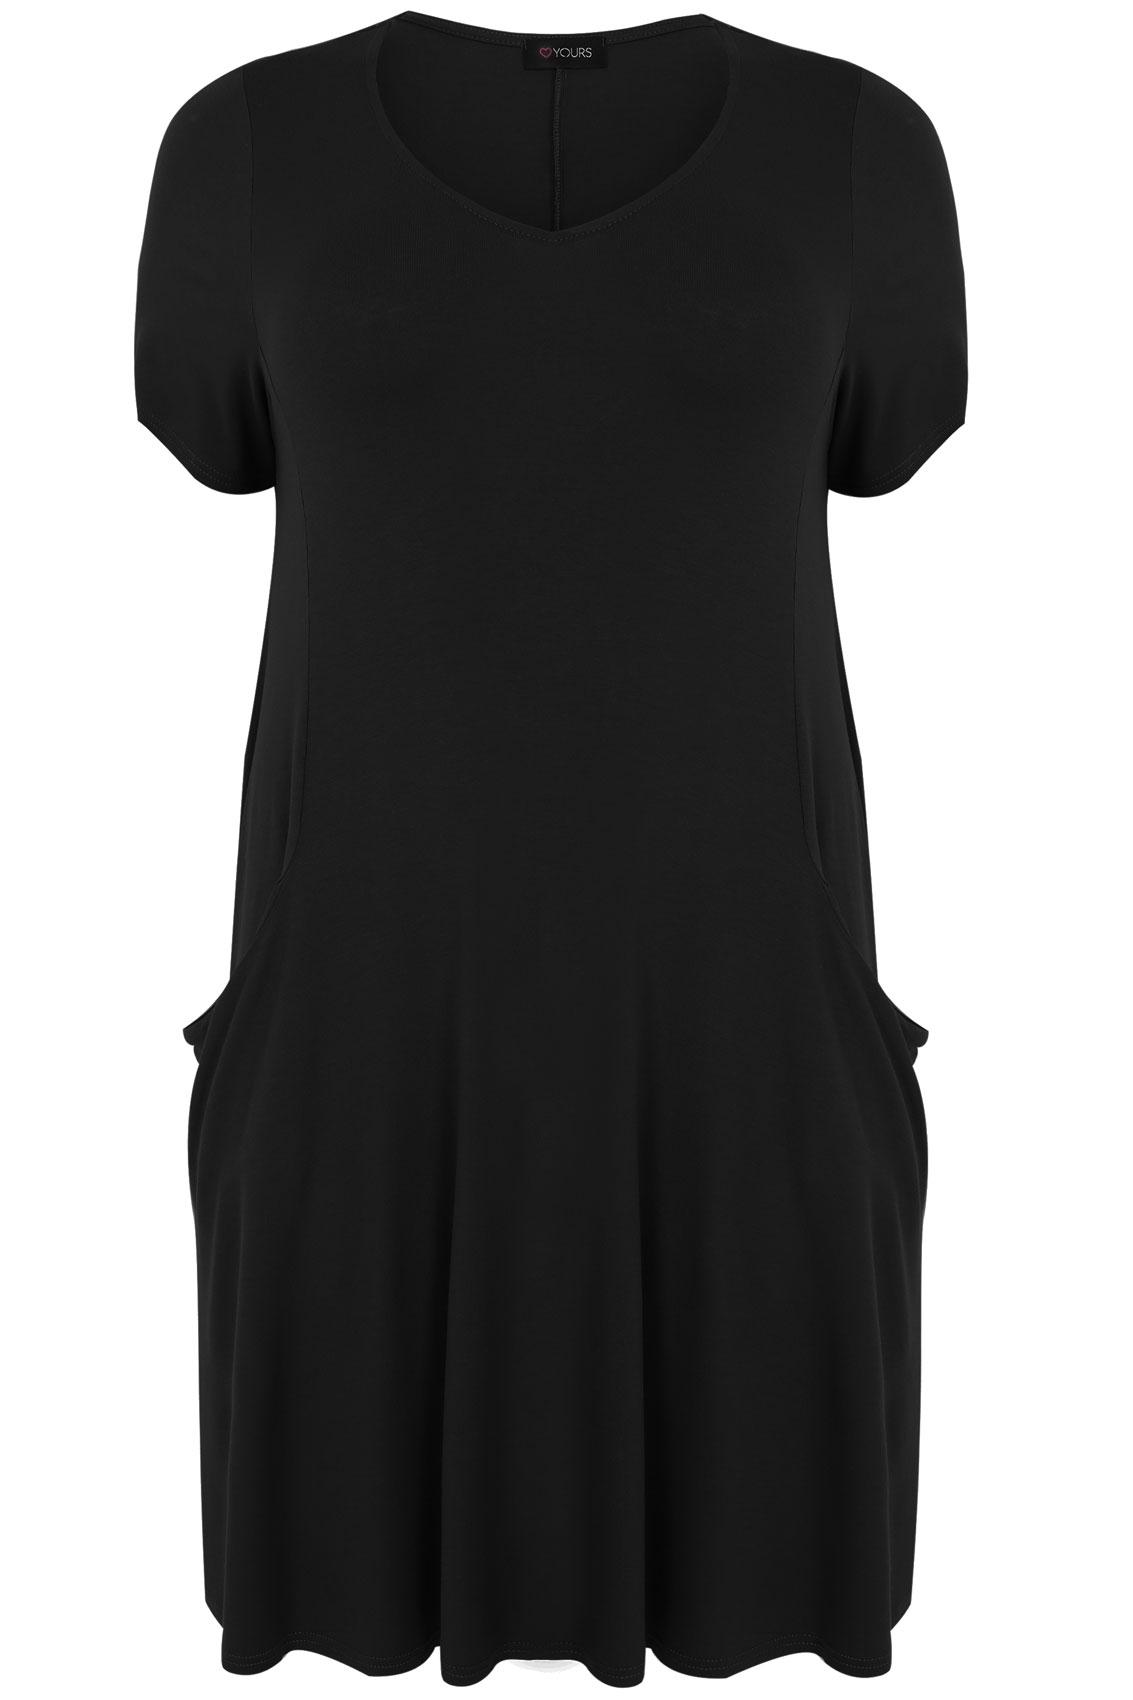 Black jersey dress with drop pockets plus size 16 18 20 22 for 20 34 35 dress shirts